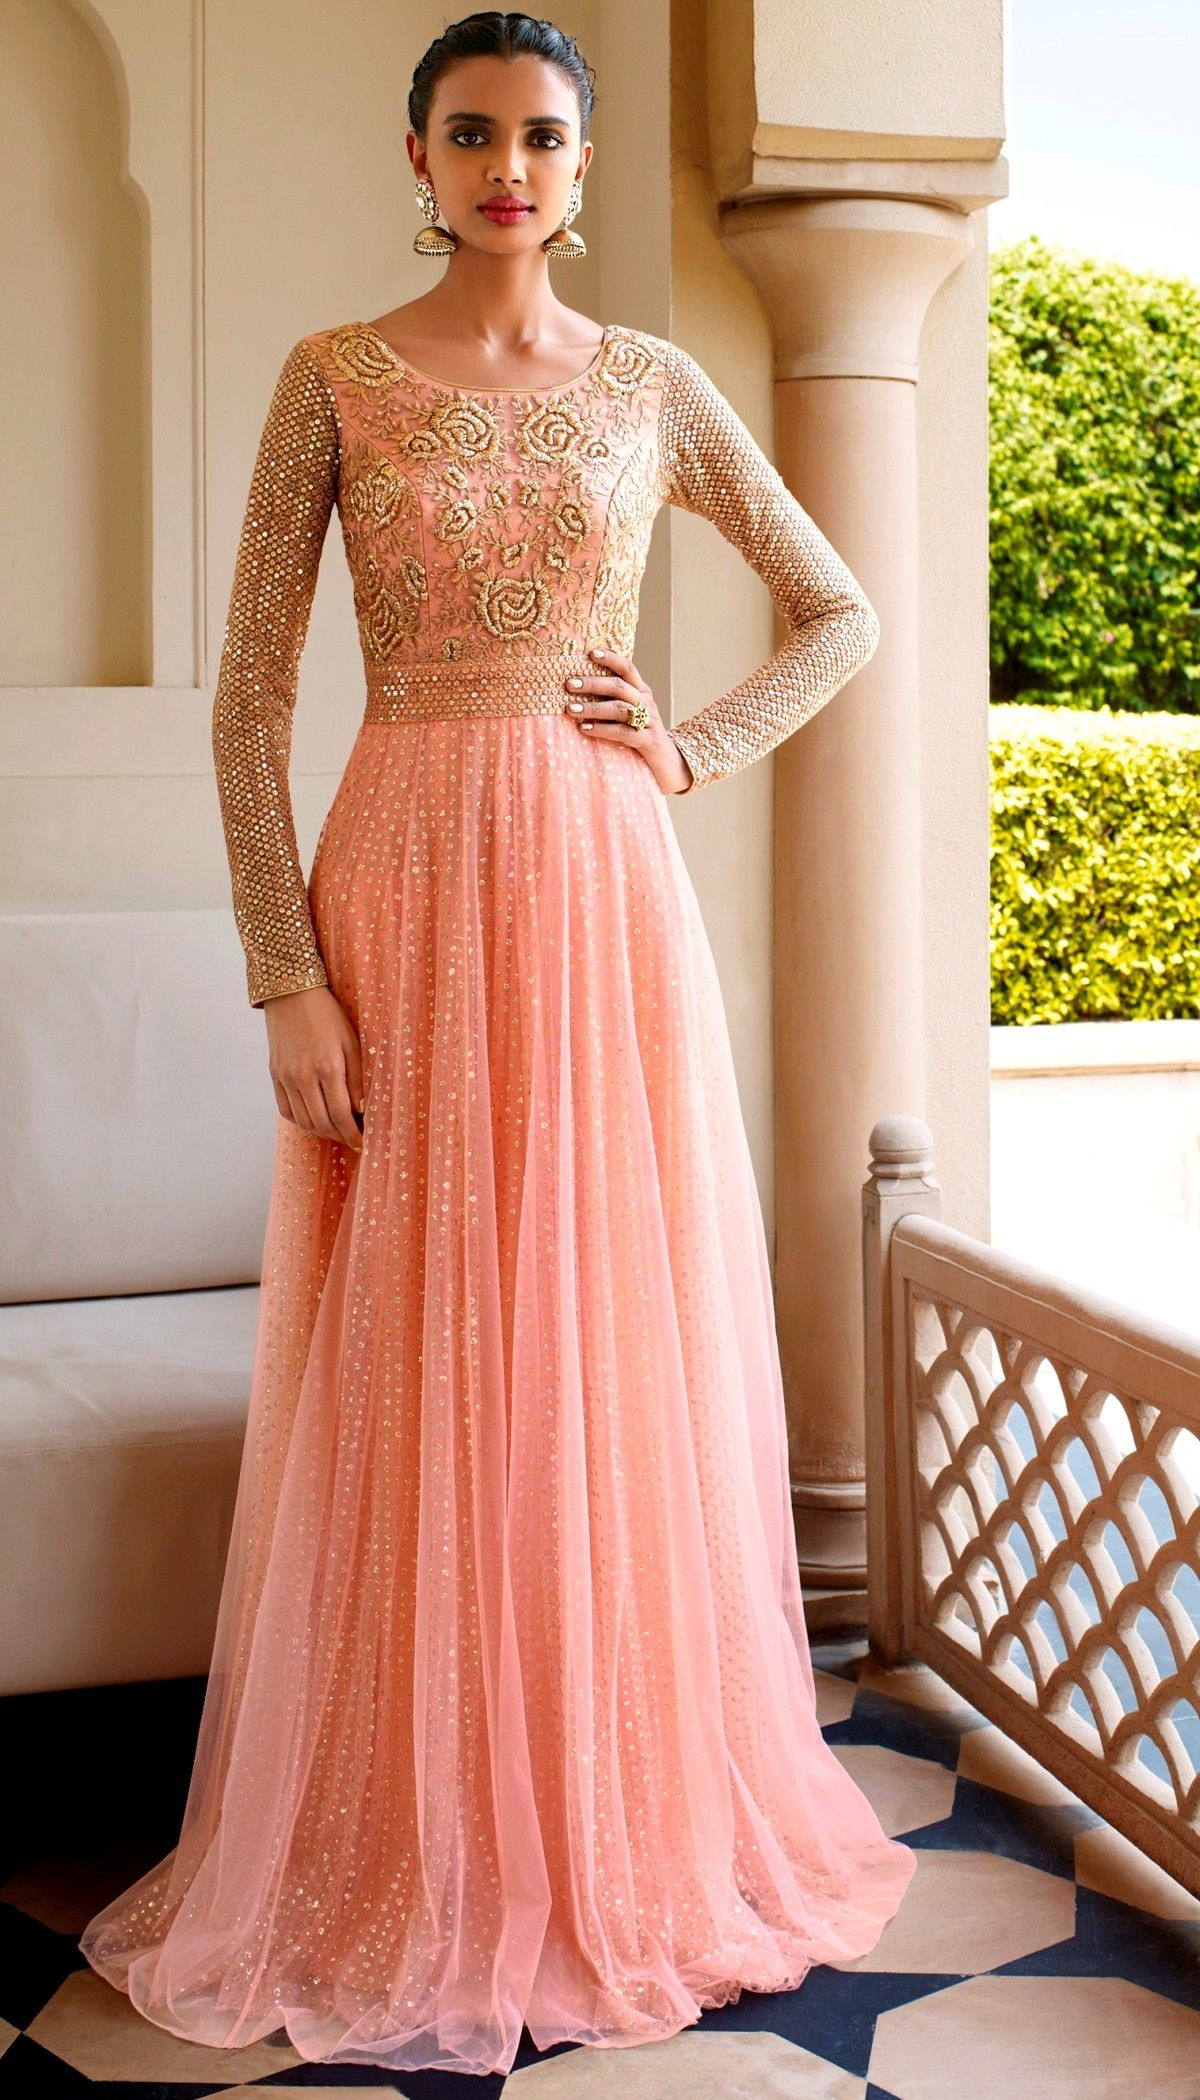 5344d102232 Peach Net Resham Embroidered On Neck Floor Length Anarkali Suit With  Chiffon Dupatta More